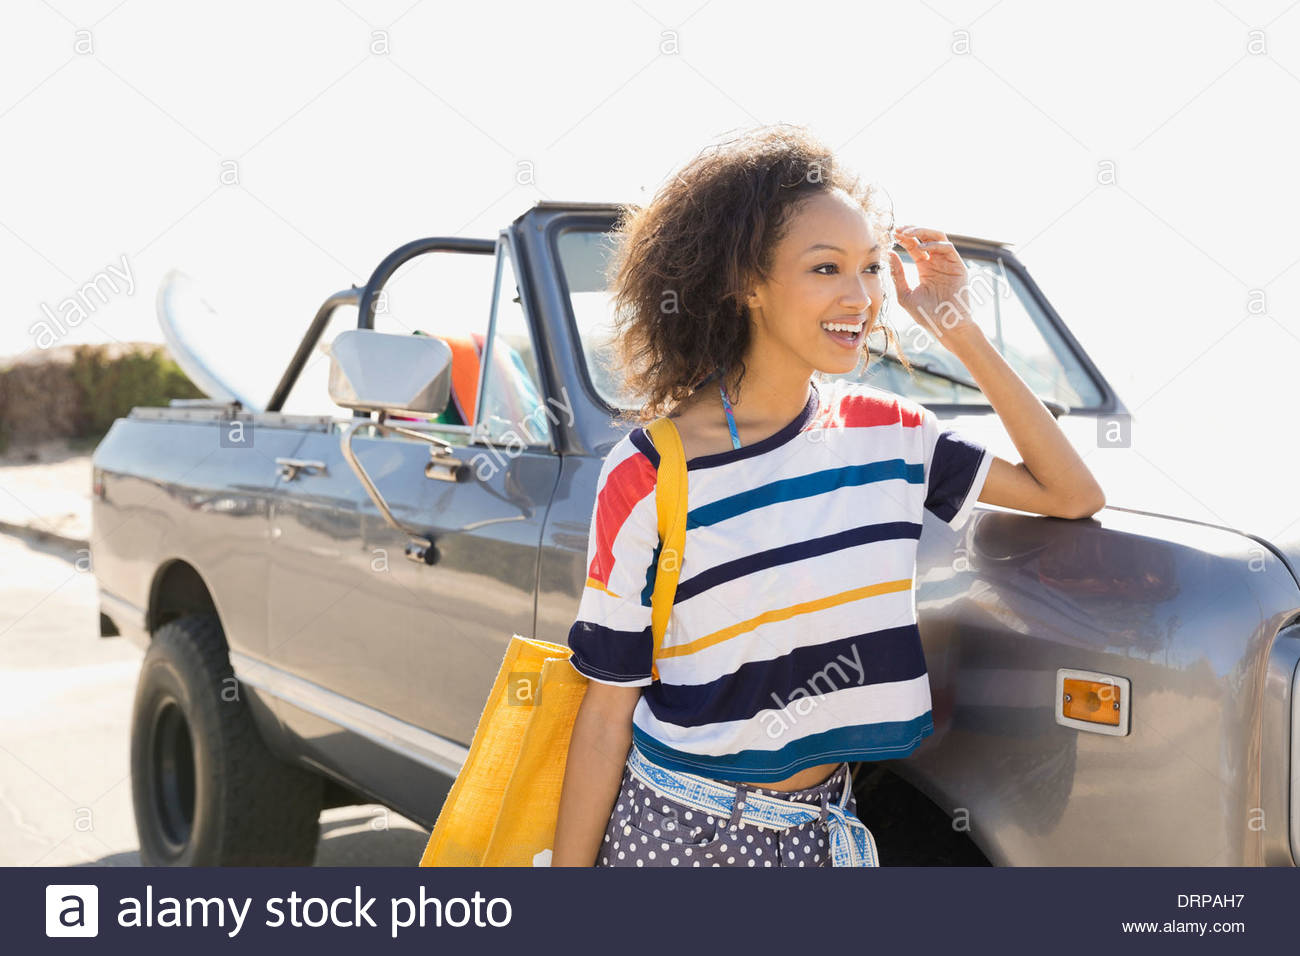 Smiling woman leaning against off-road vehicle - Stock Image